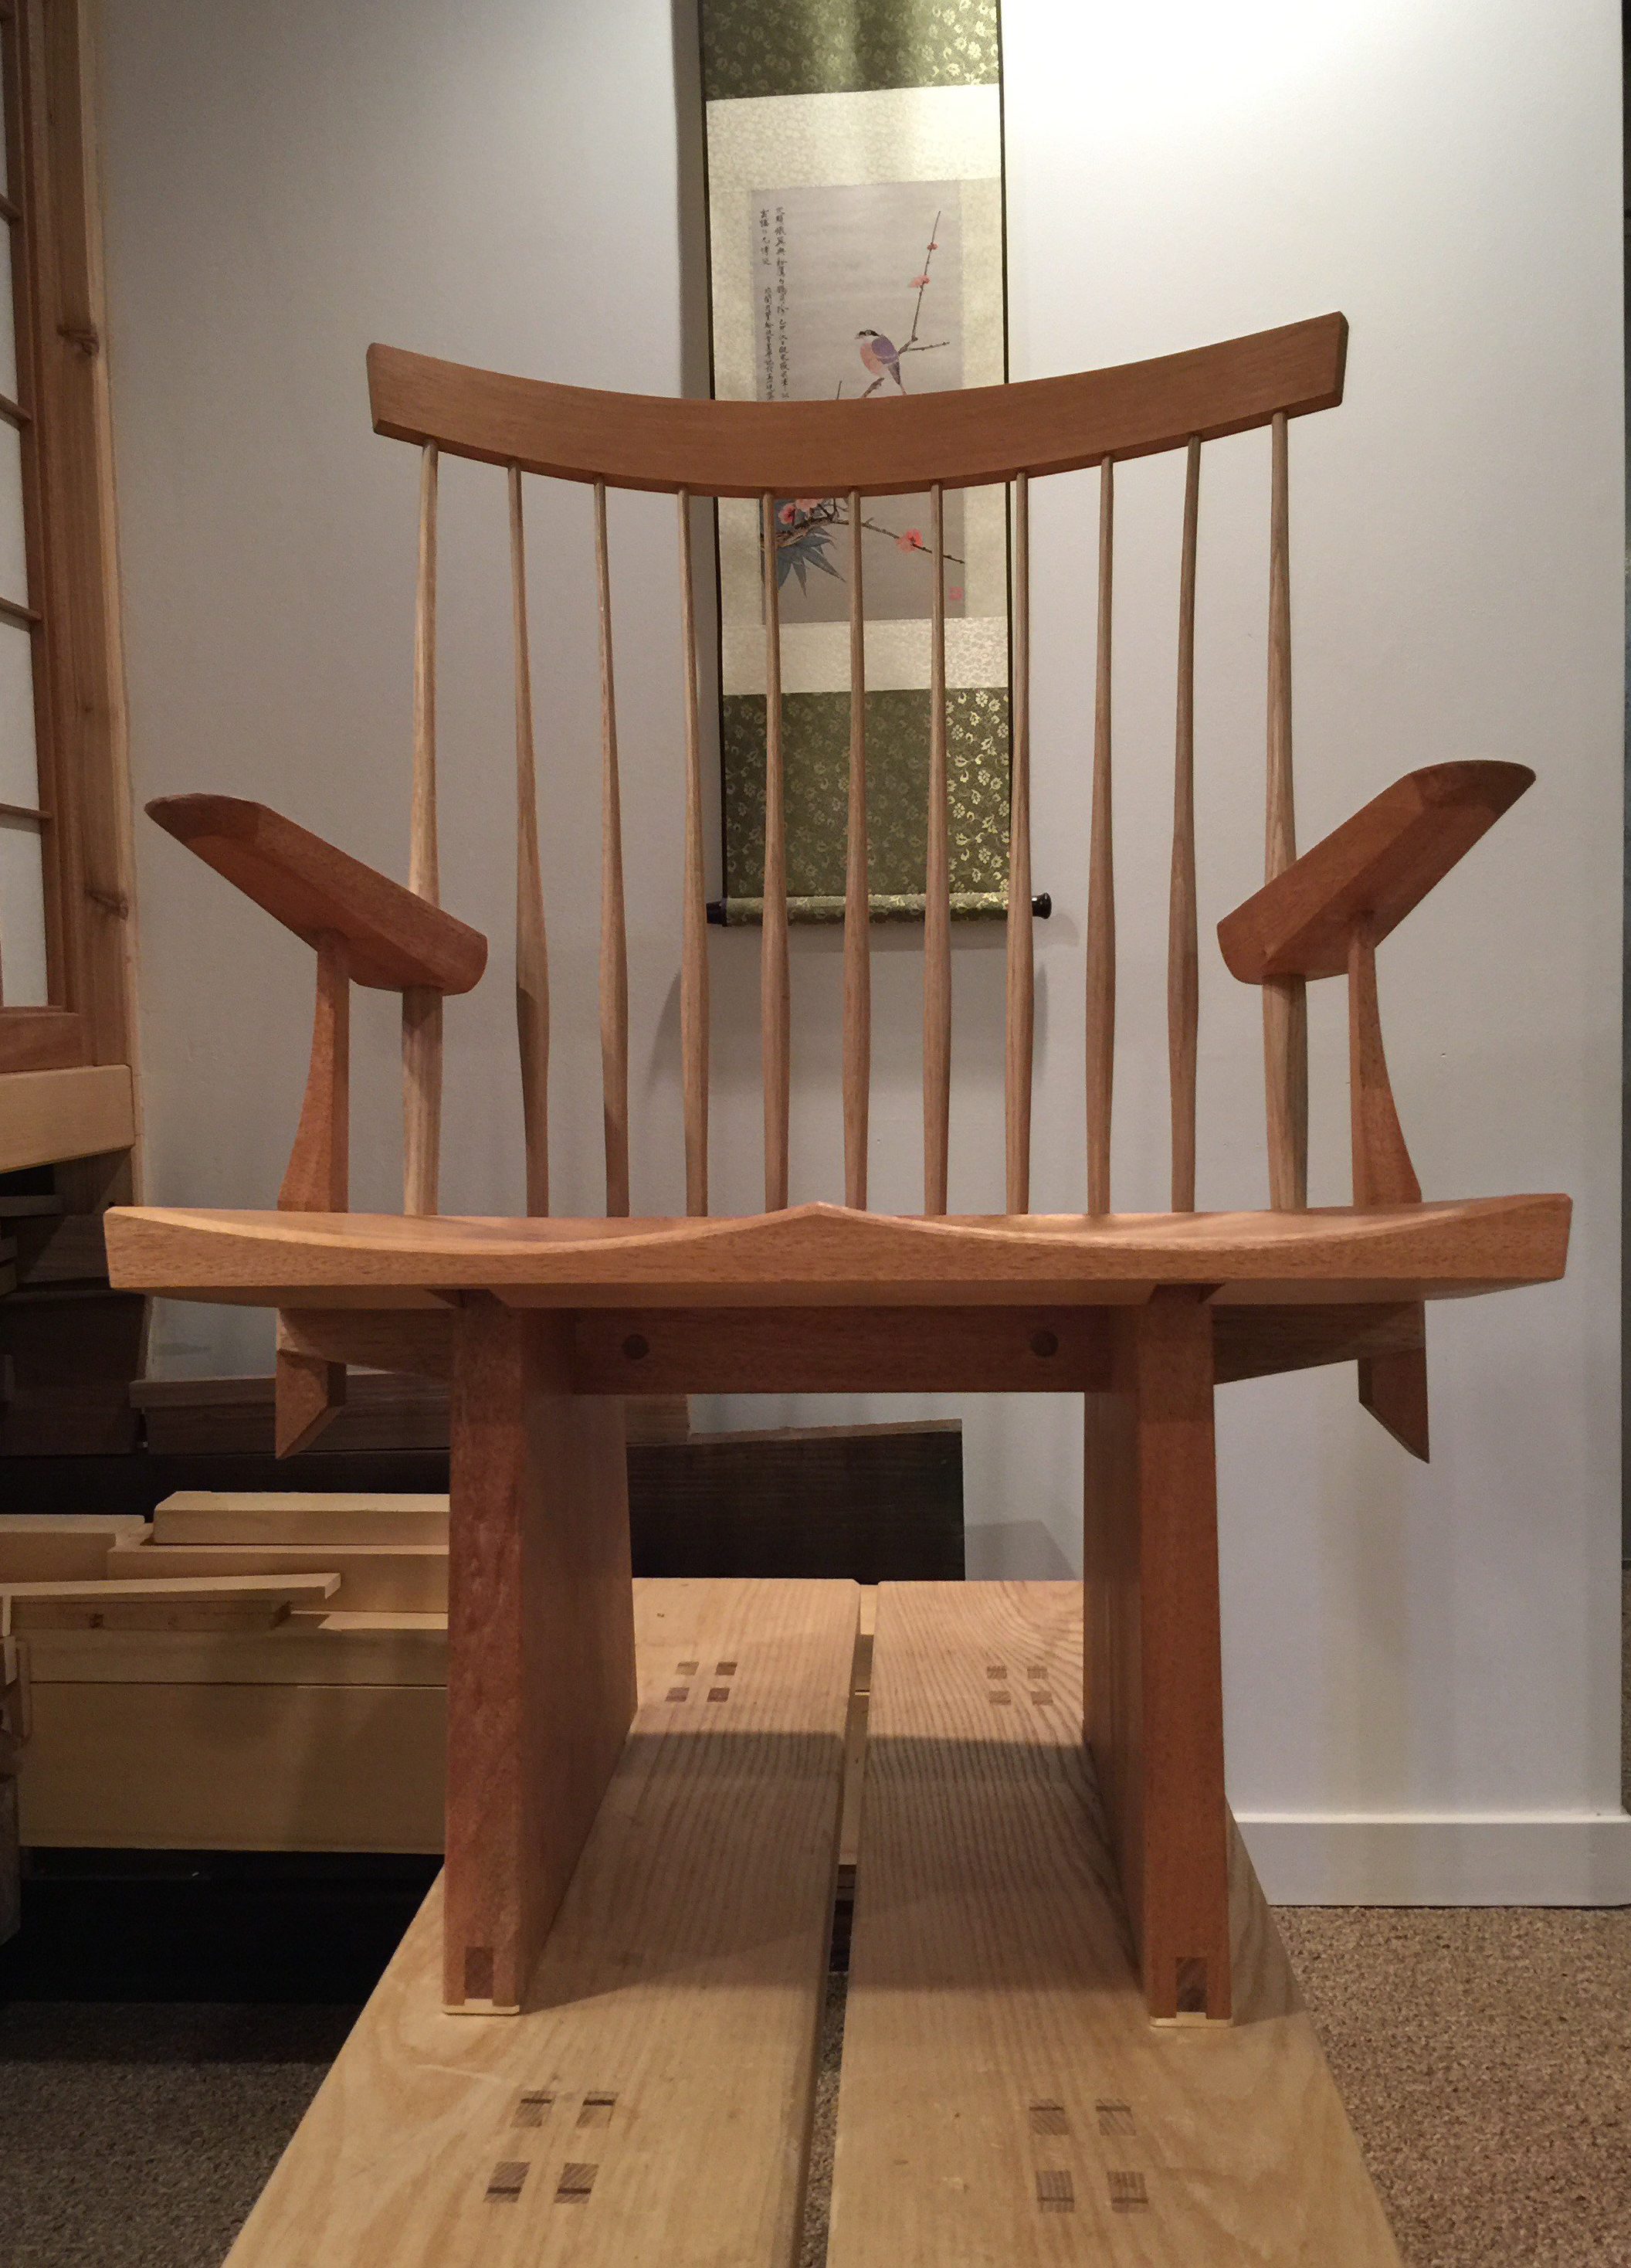 Tea House Table and Chair – Final